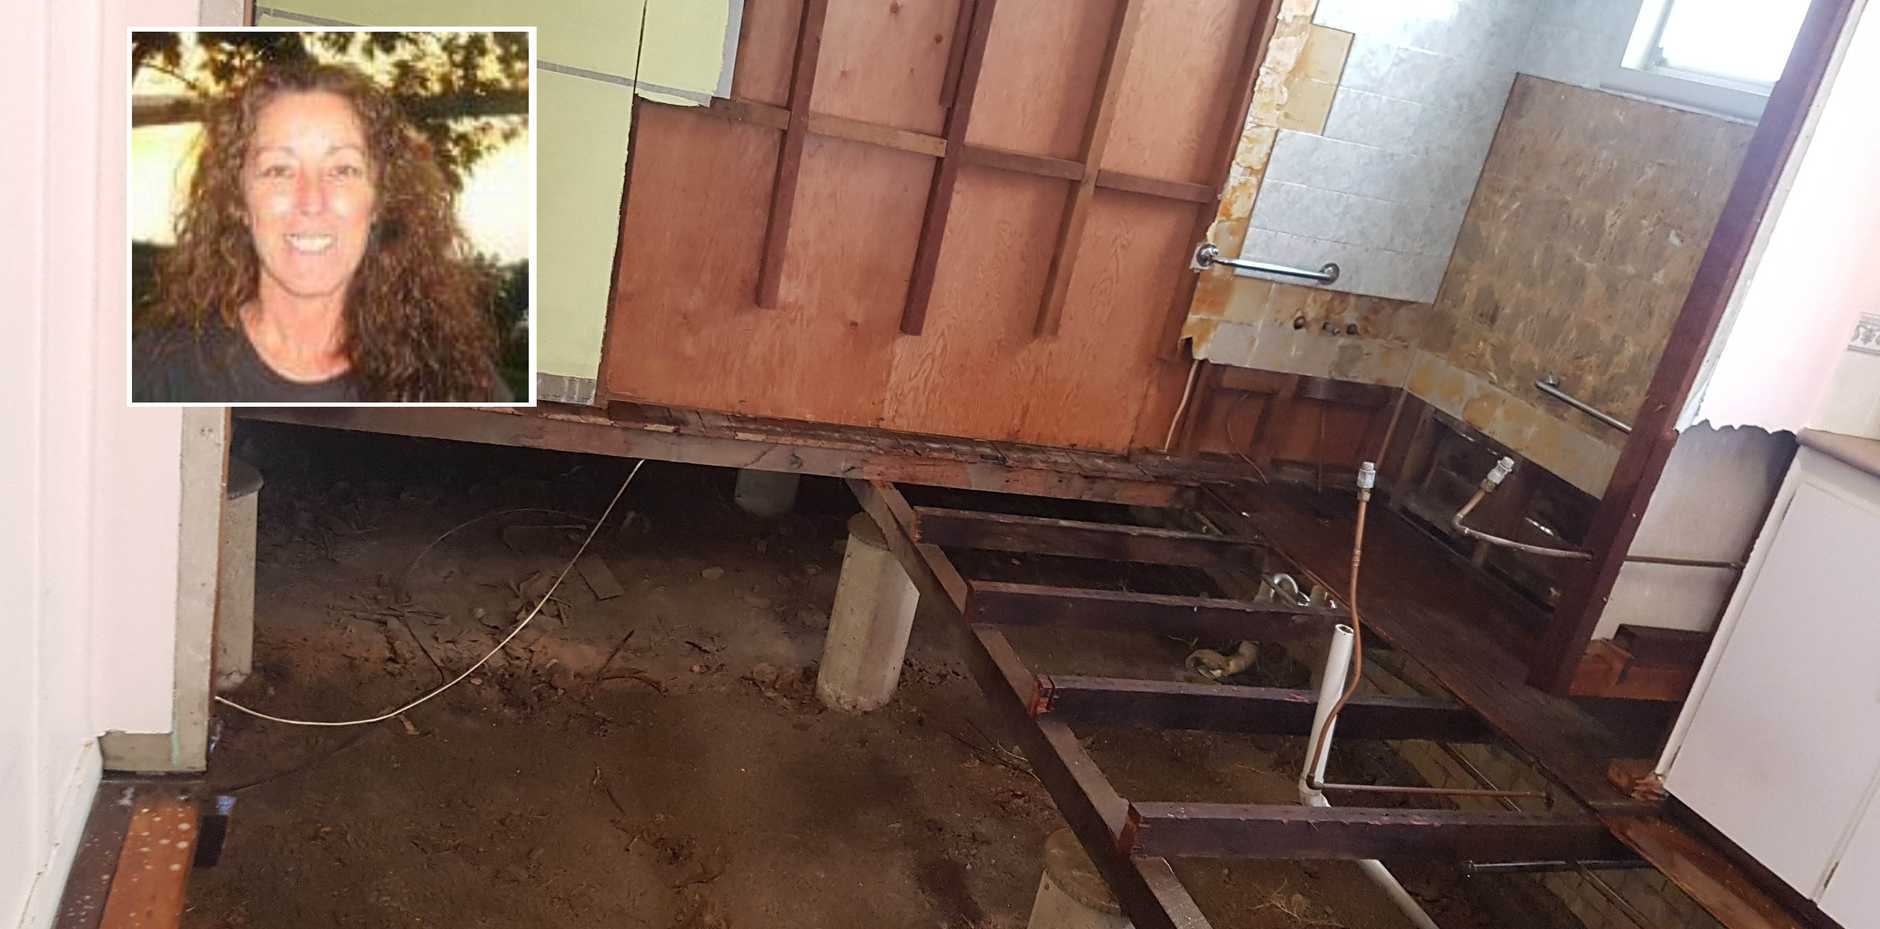 STRIPPED BARE: Entire sections of Dianne Hanna's house, including the entire bathroom and half the kitchen and hall, had to be ripped out to remove contamination caused by her decomposing body.